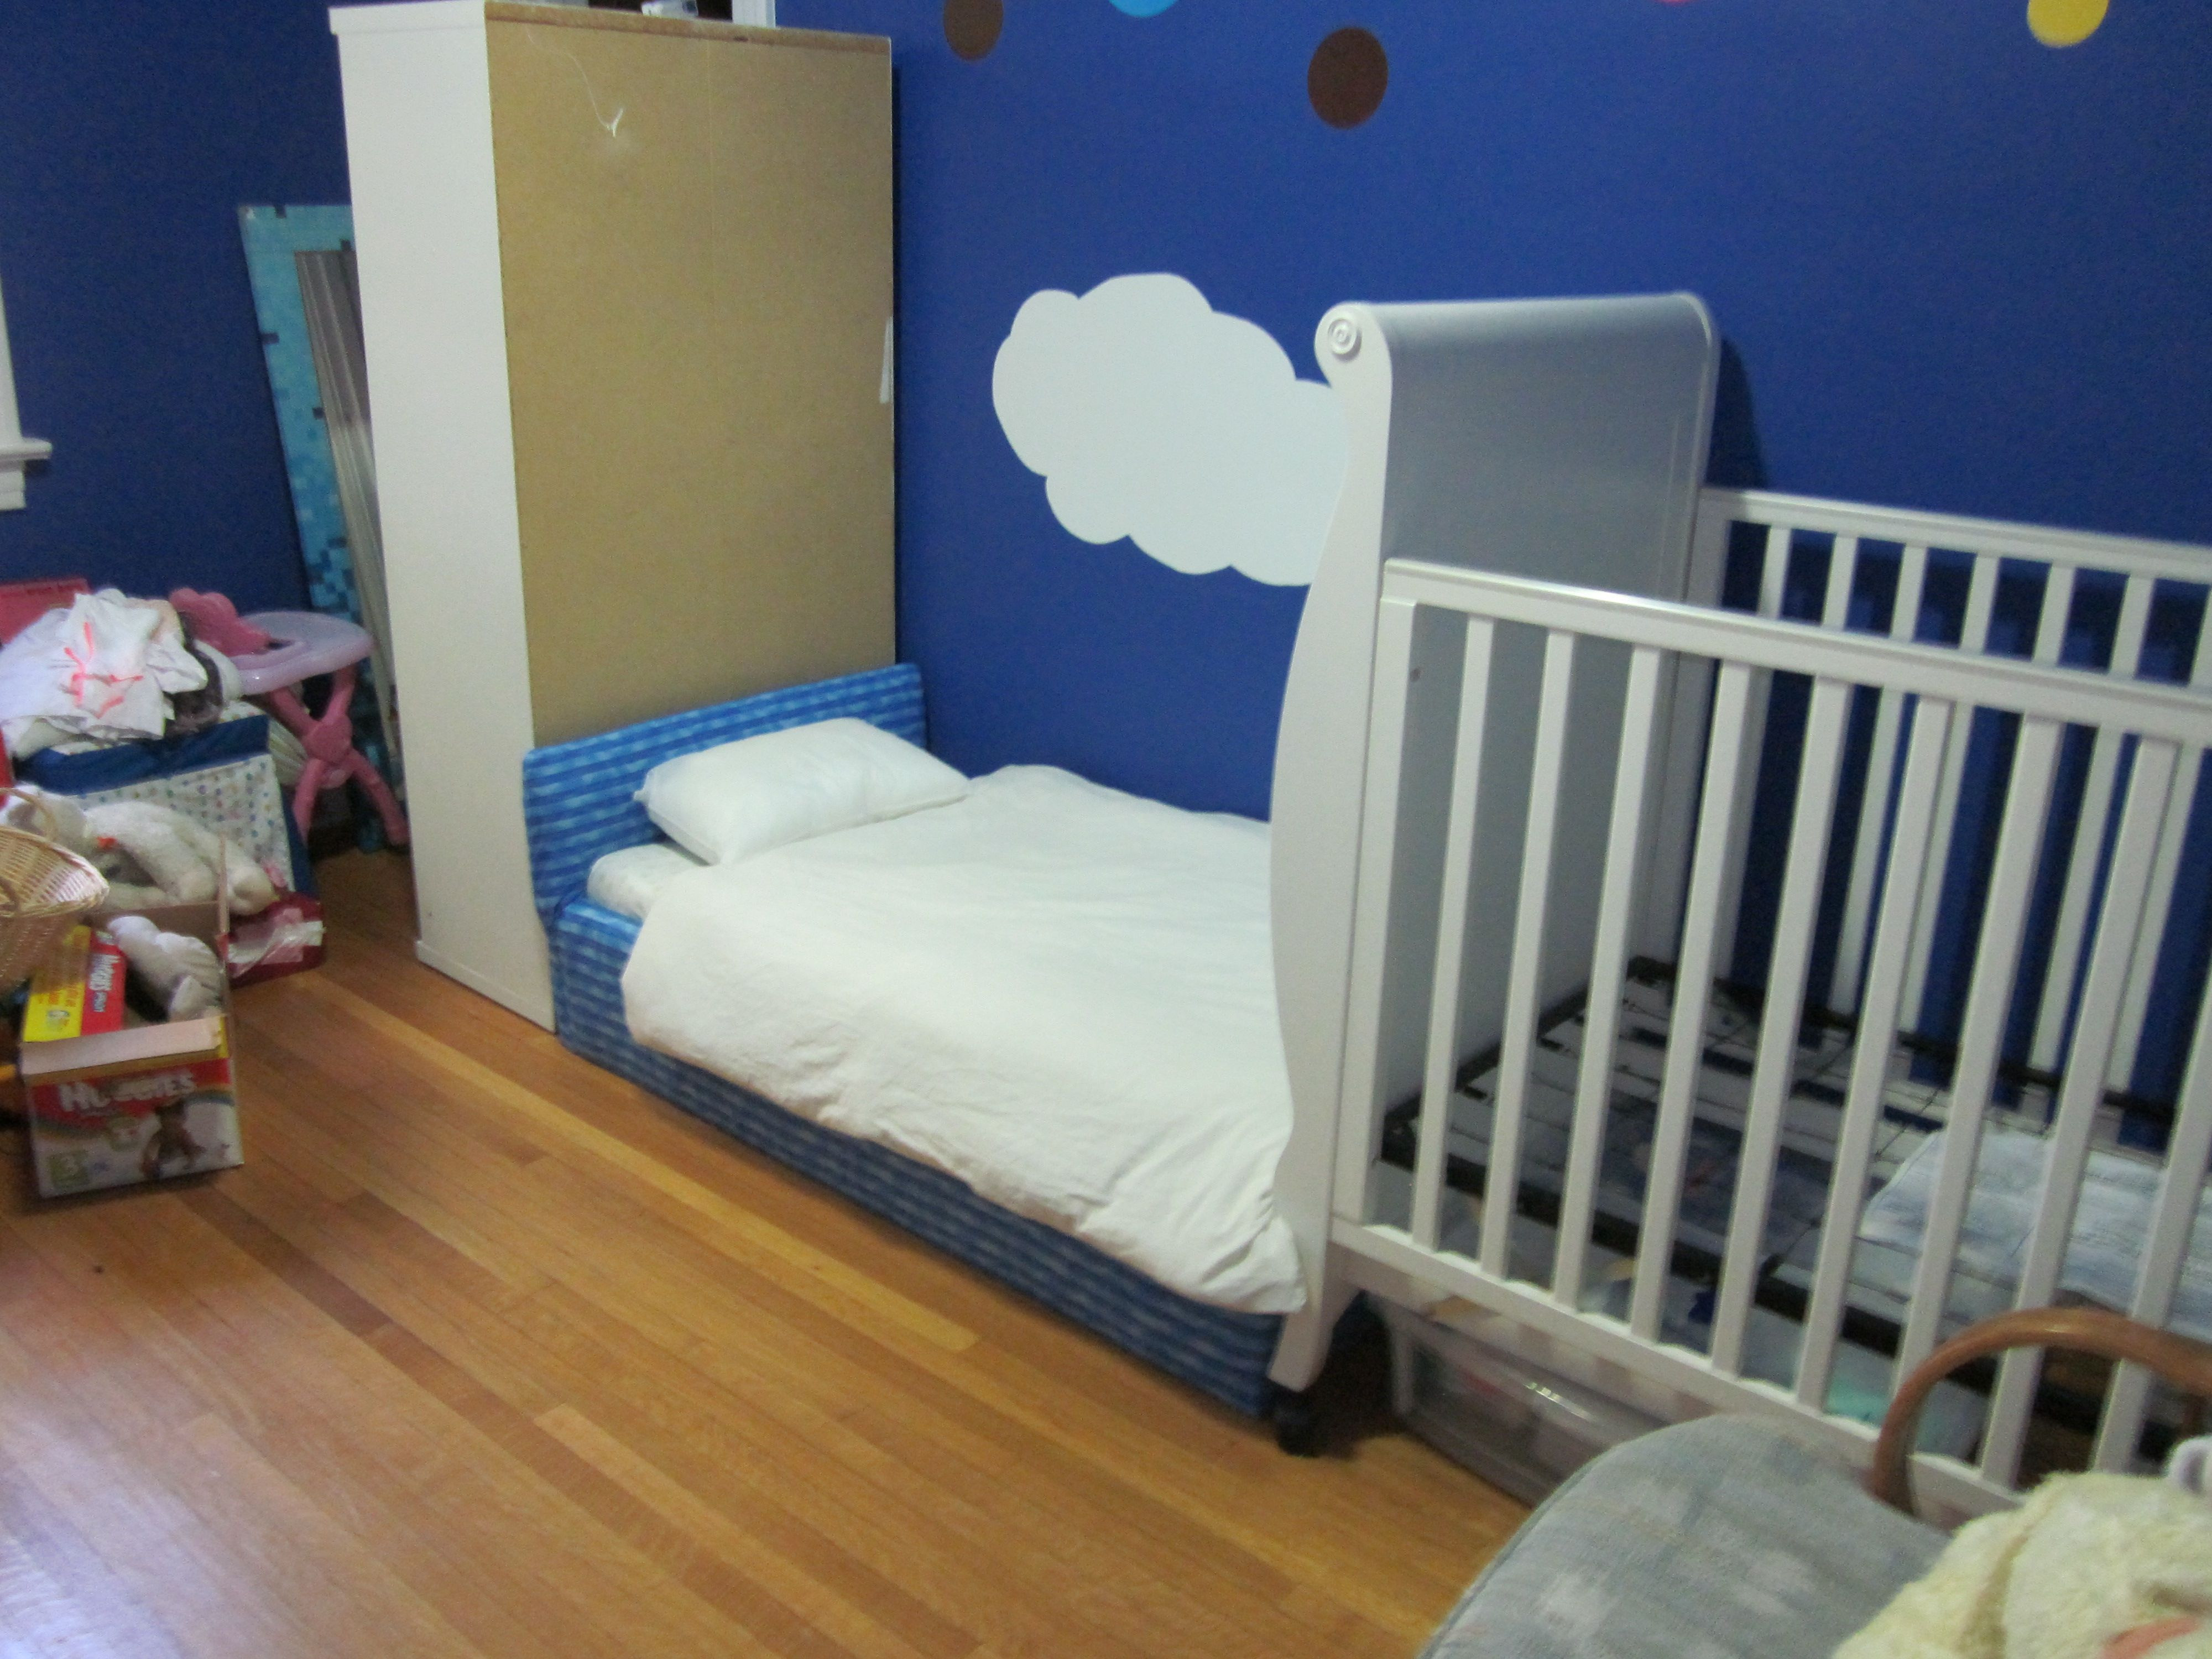 Best ideas about DIY Kids Bed Frame . Save or Pin 10 Cool DIY Kids Beds Now.